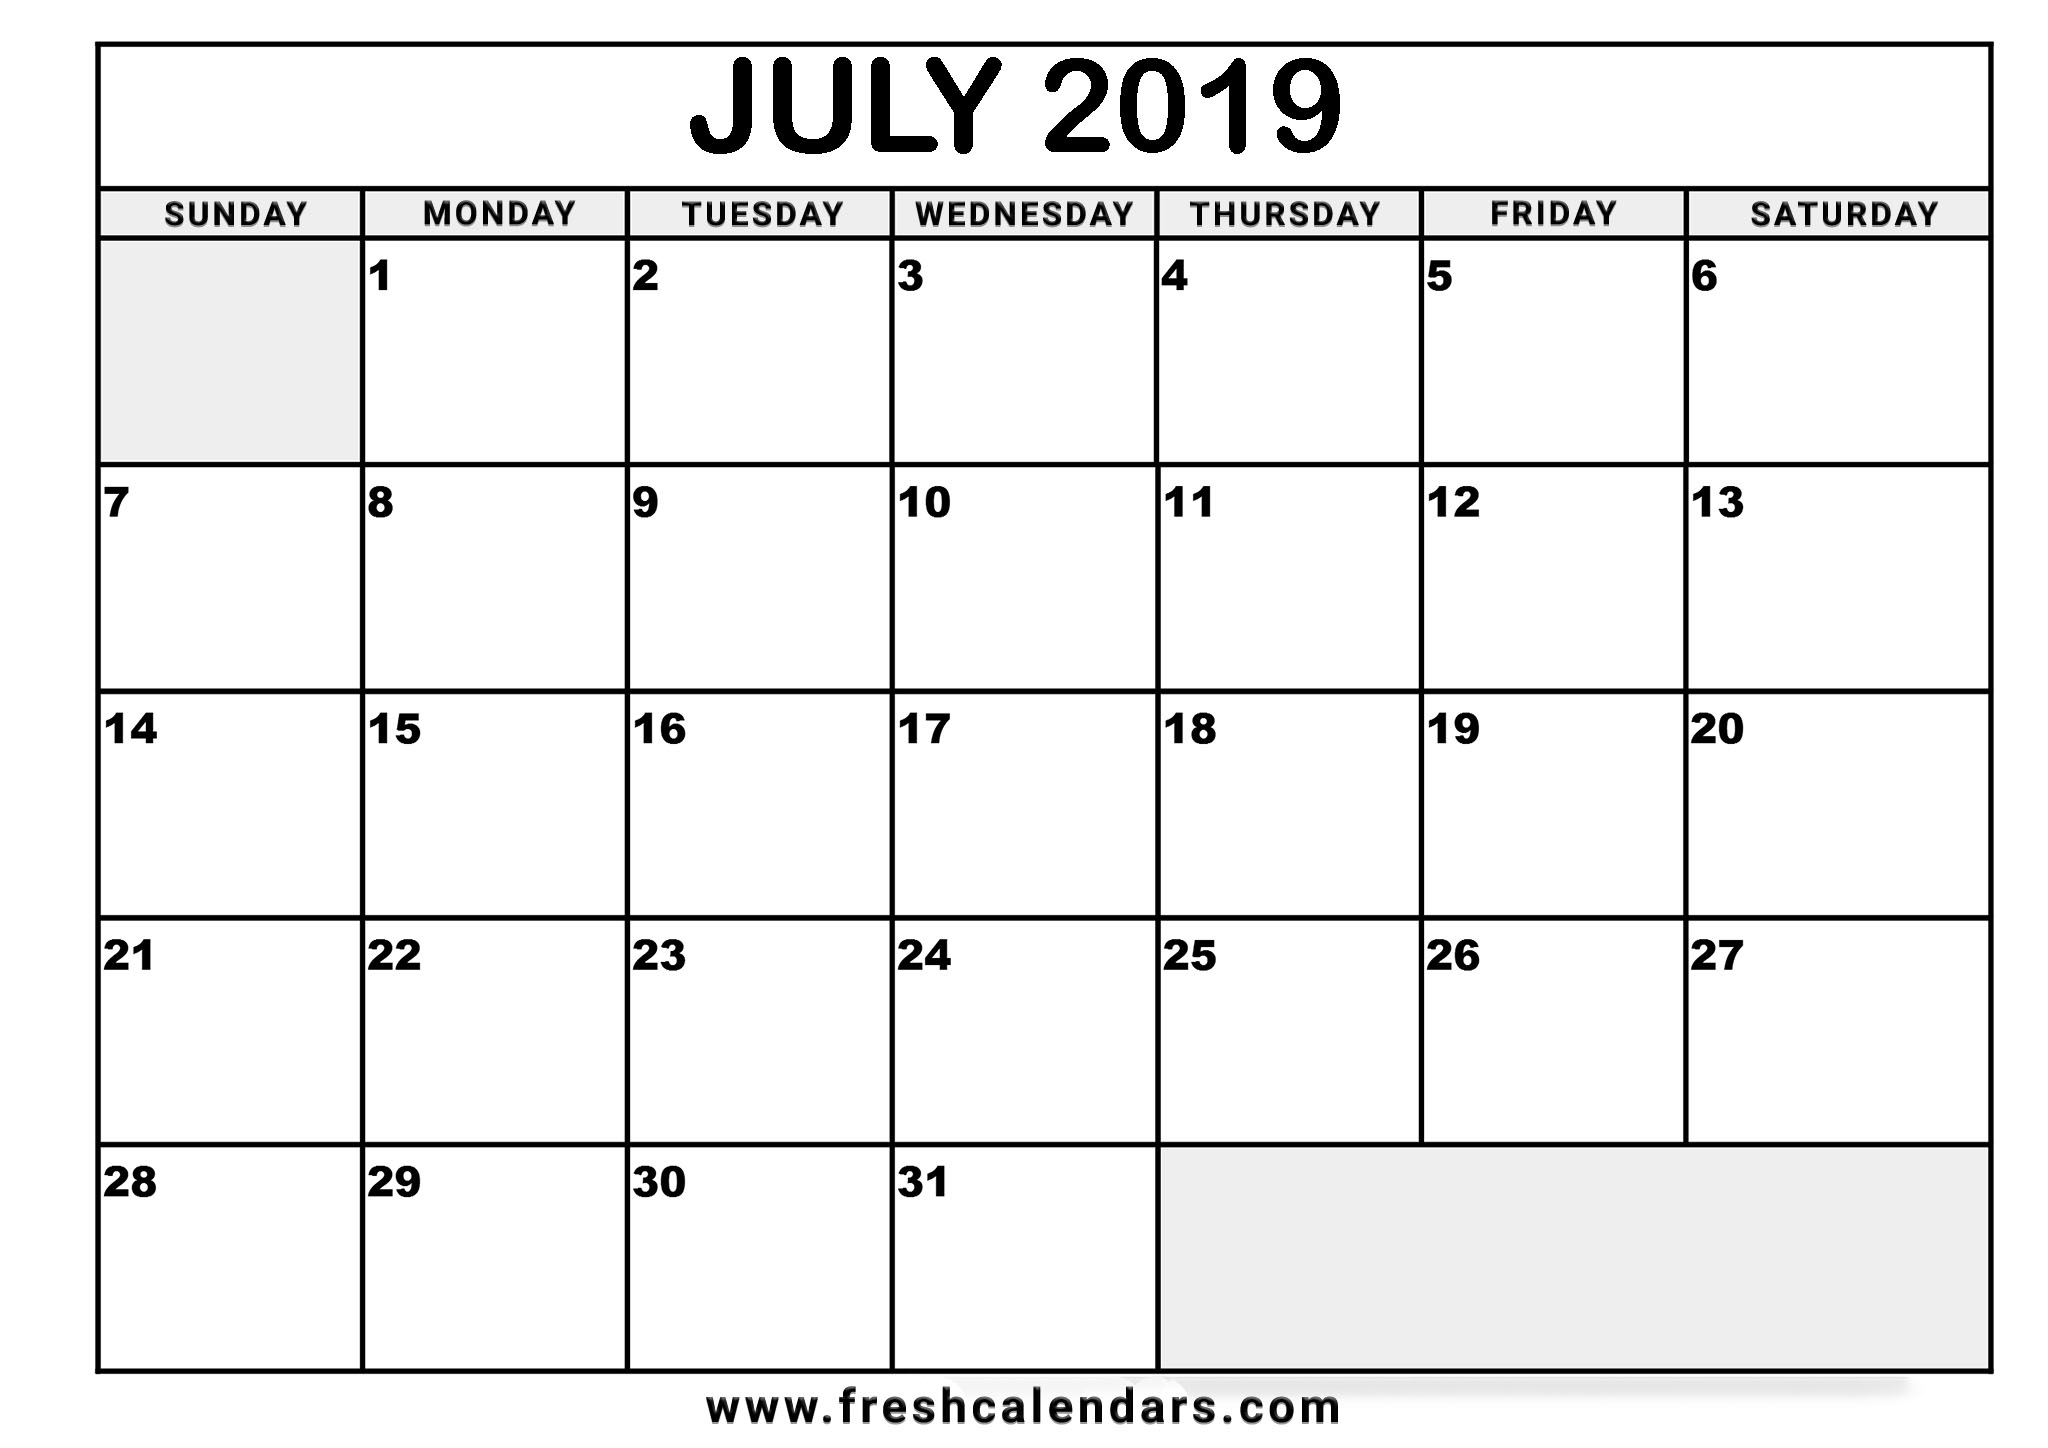 July 2019 Calendar Online Templates